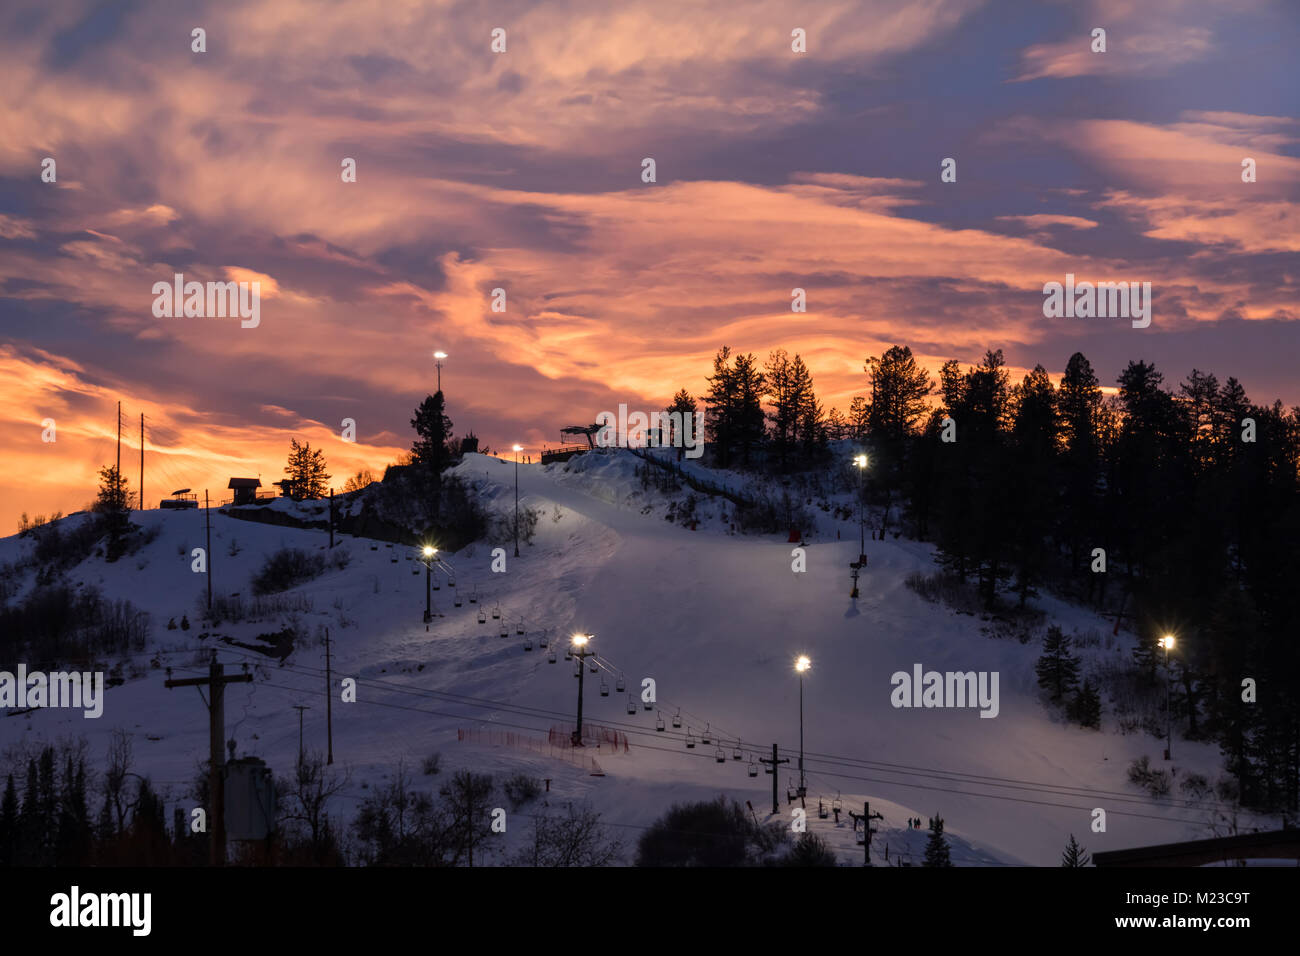 View of of a ski slope lit for night skiing in Steamboat Springs, Colorado; after sunset; colorful sky in the background - Stock Image